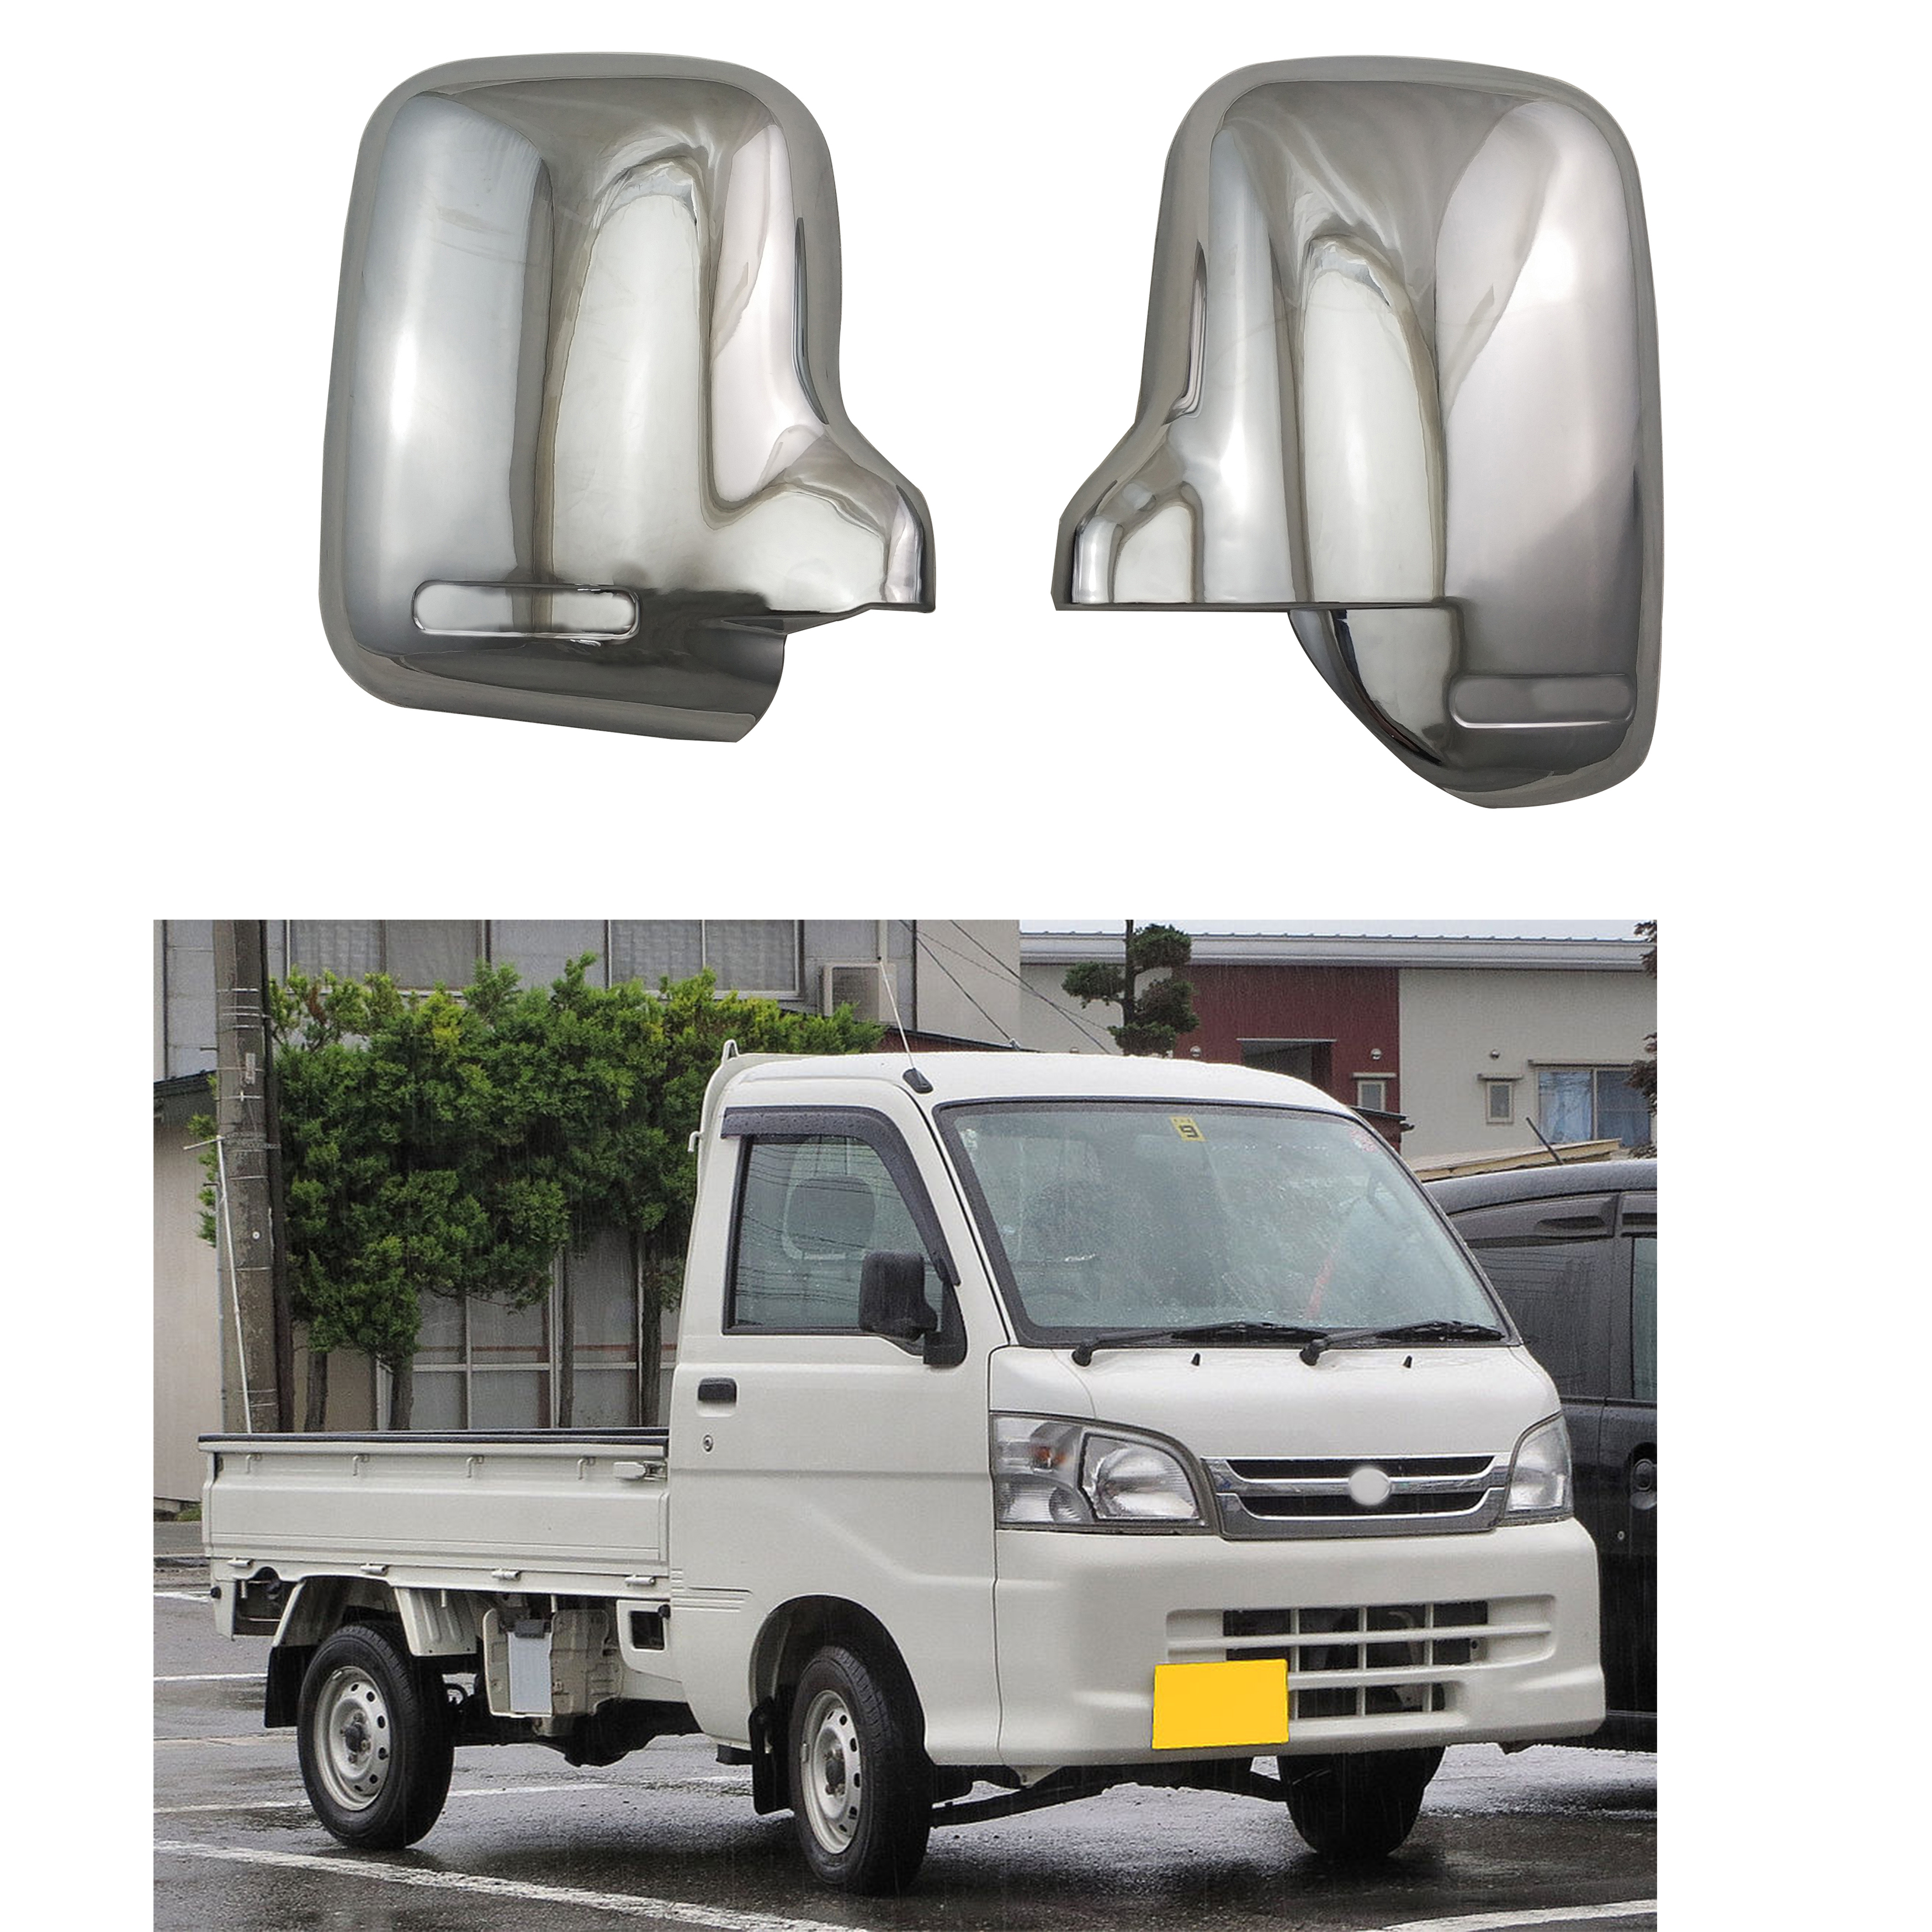 For Daihatsu Hijet S100, S110, S120, S130 2007-2014 Novel style 2PCS ABS Chrome plated Rear view door mirror cover Auto supplies